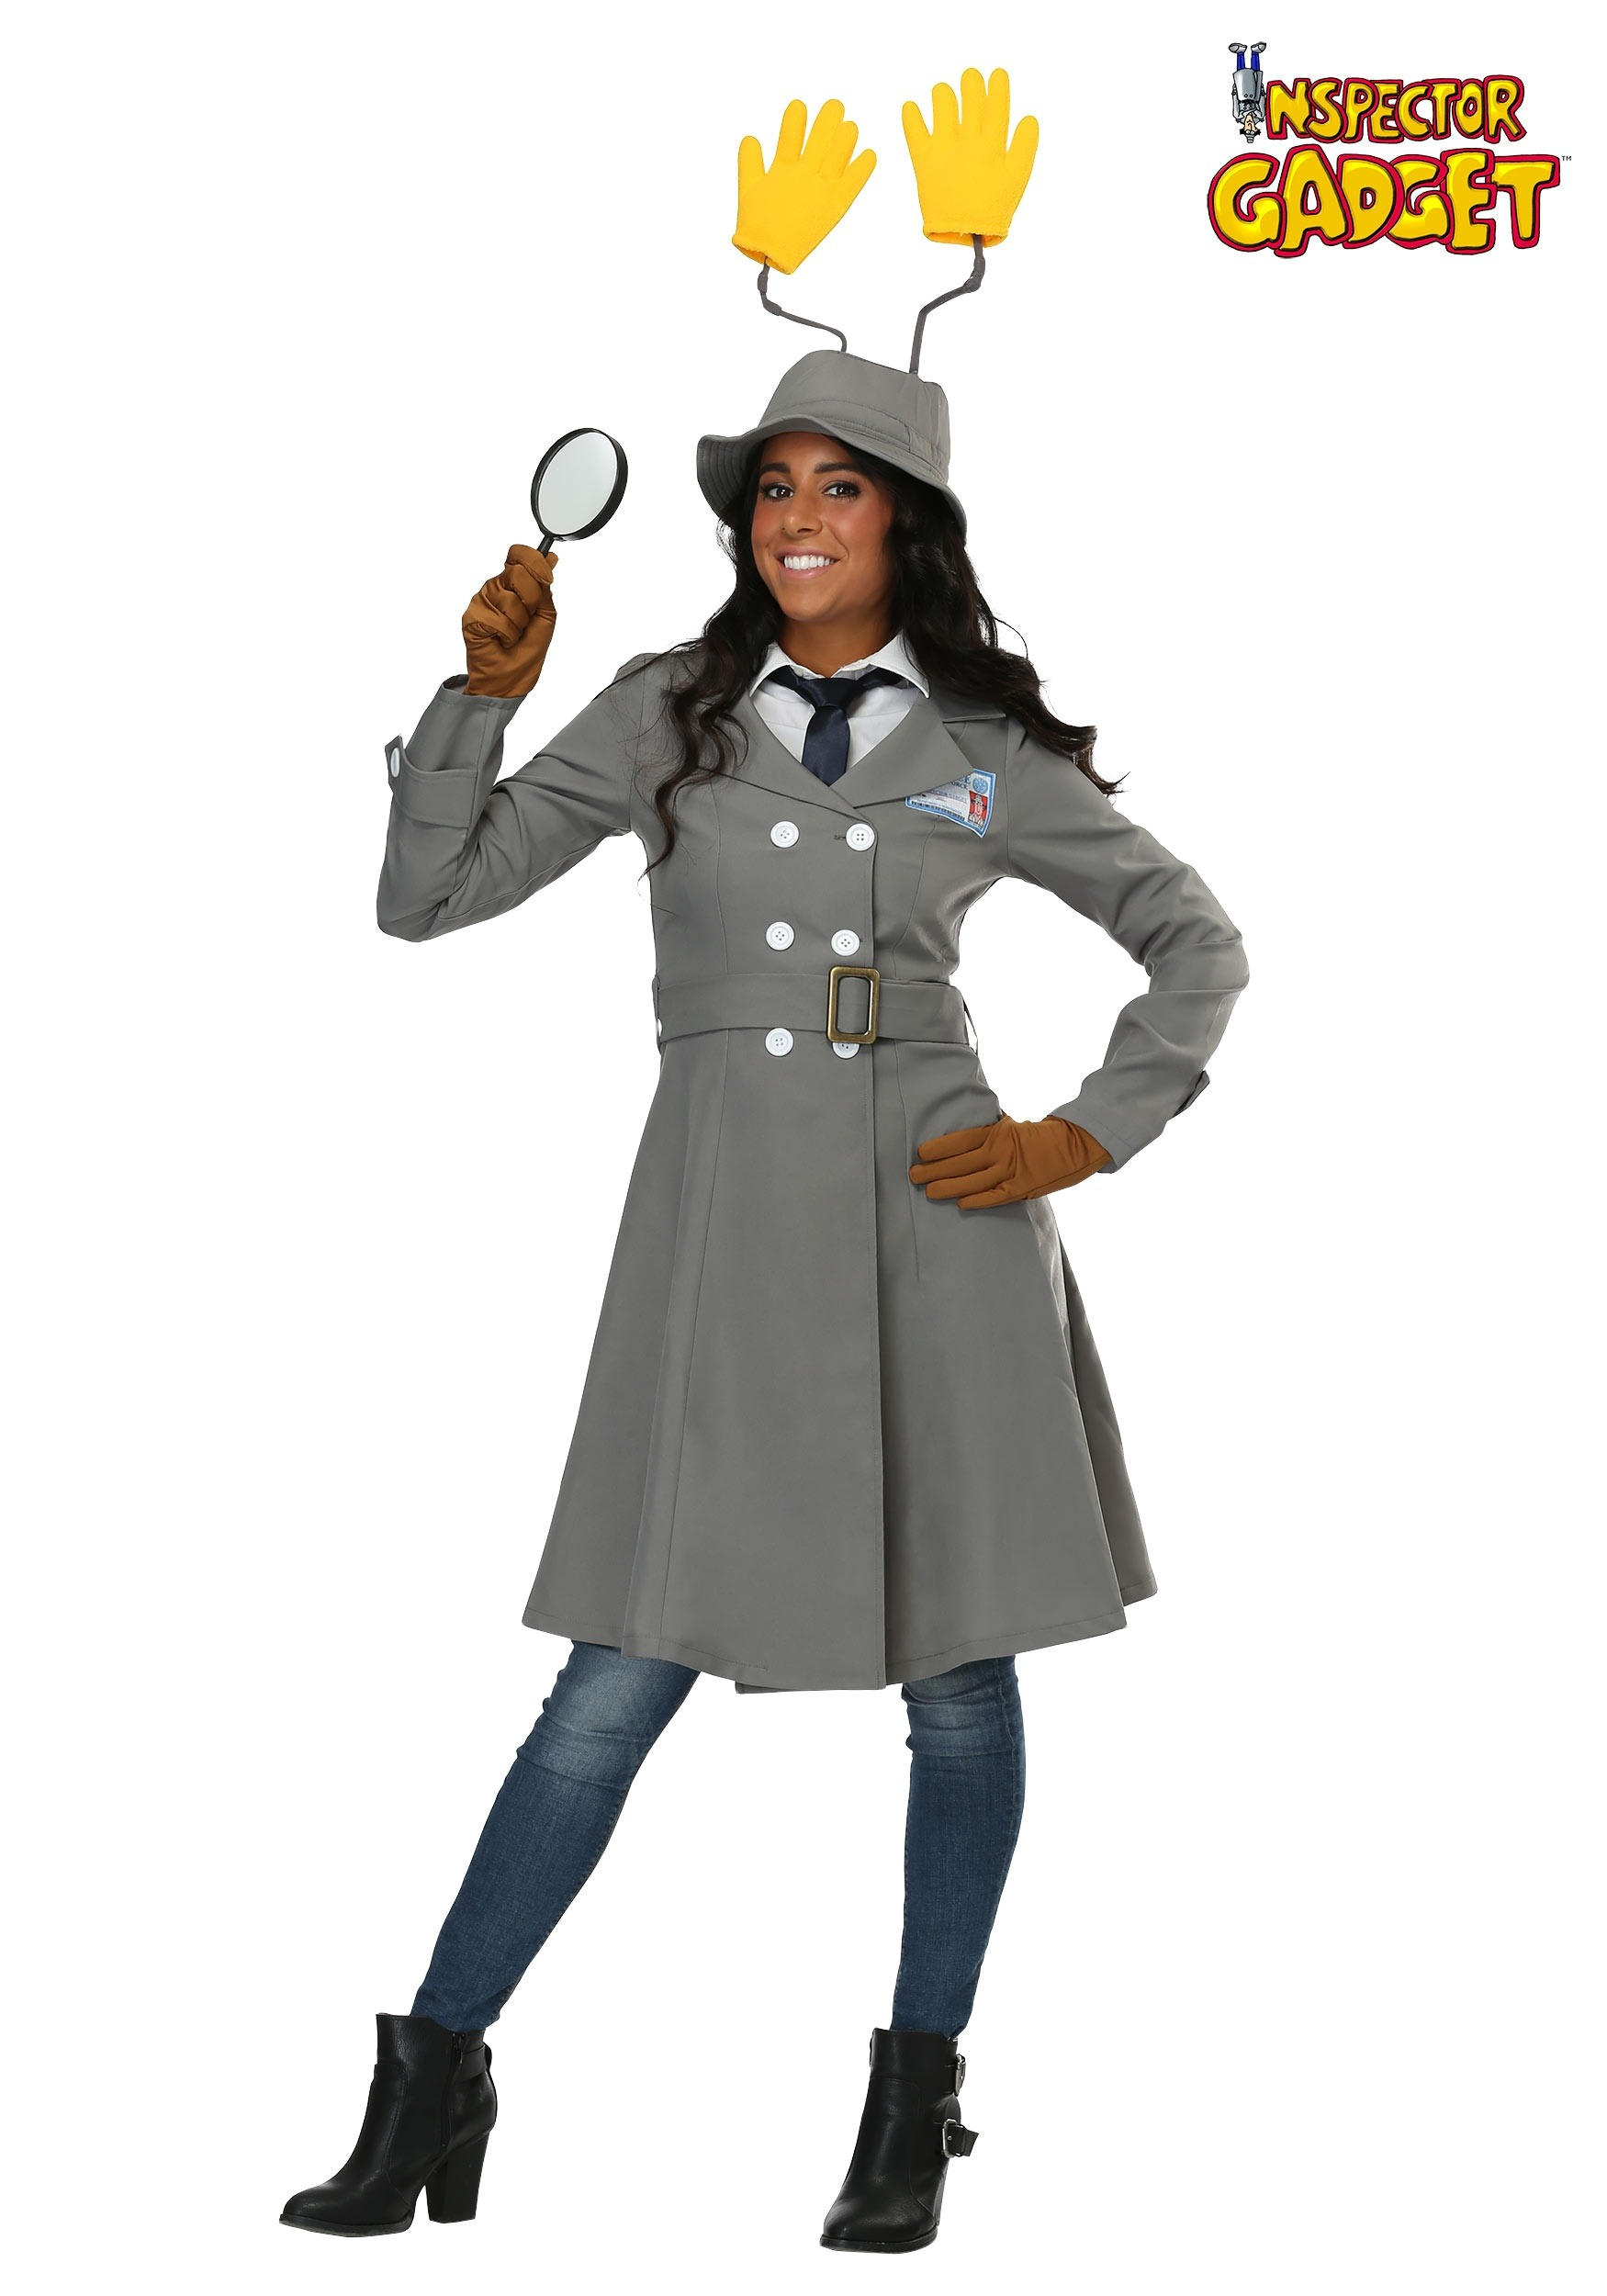 inspector gadget costume for women